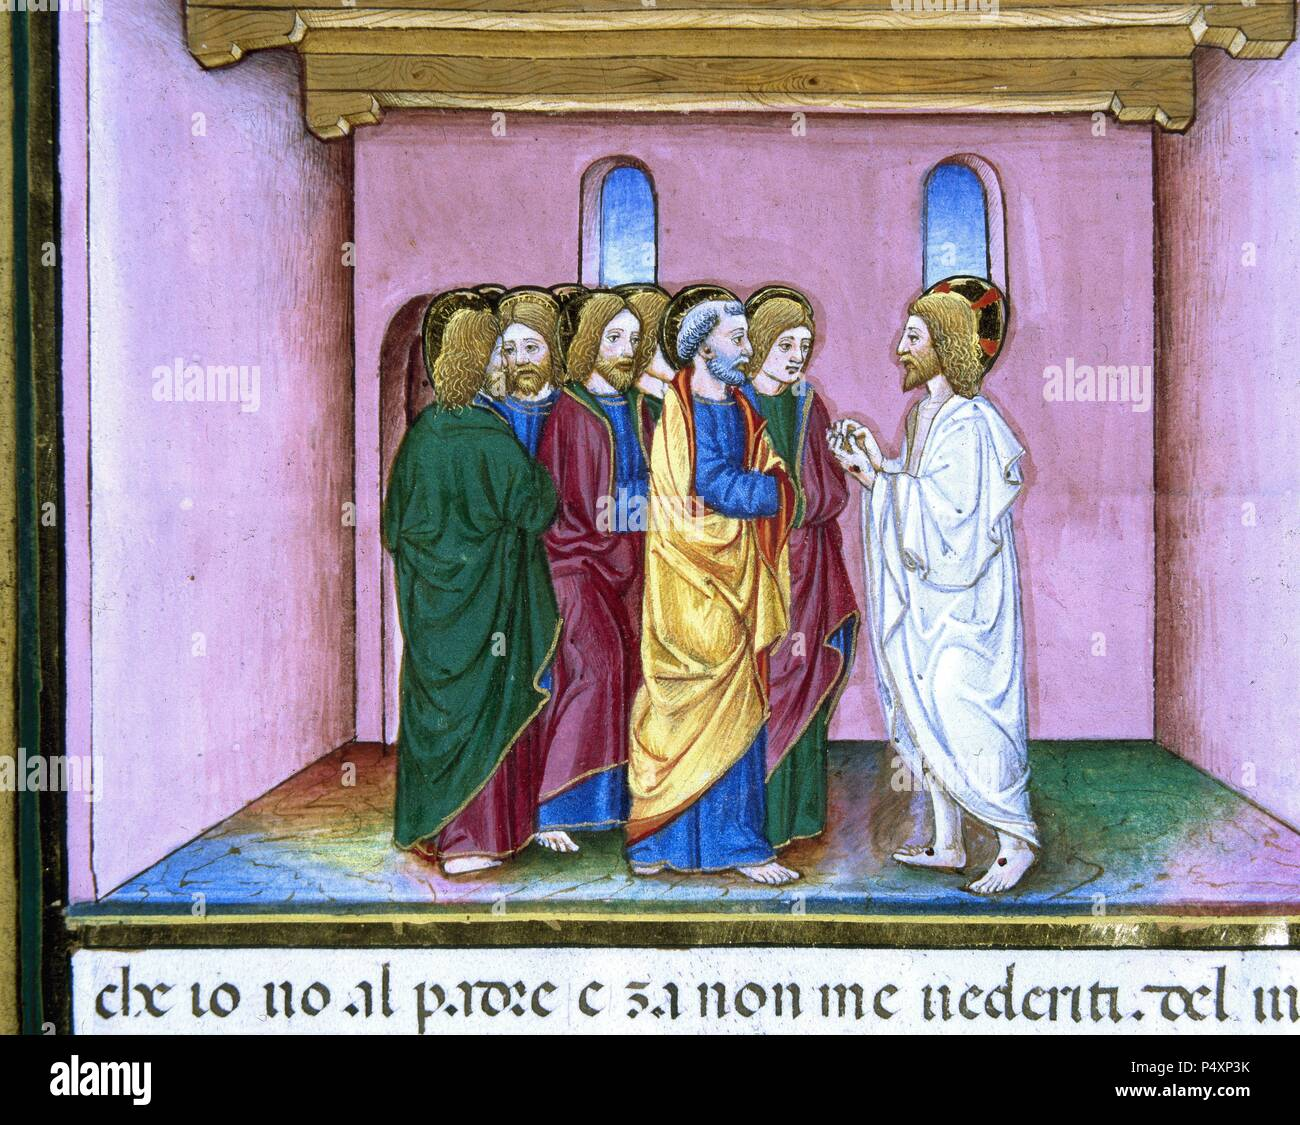 Risen Jesus announces to the disciples the coming of the Holy Spirit. Illuminated pages of the Codex of Predis (1476). Royal Library. Turin. Italy. - Stock Image